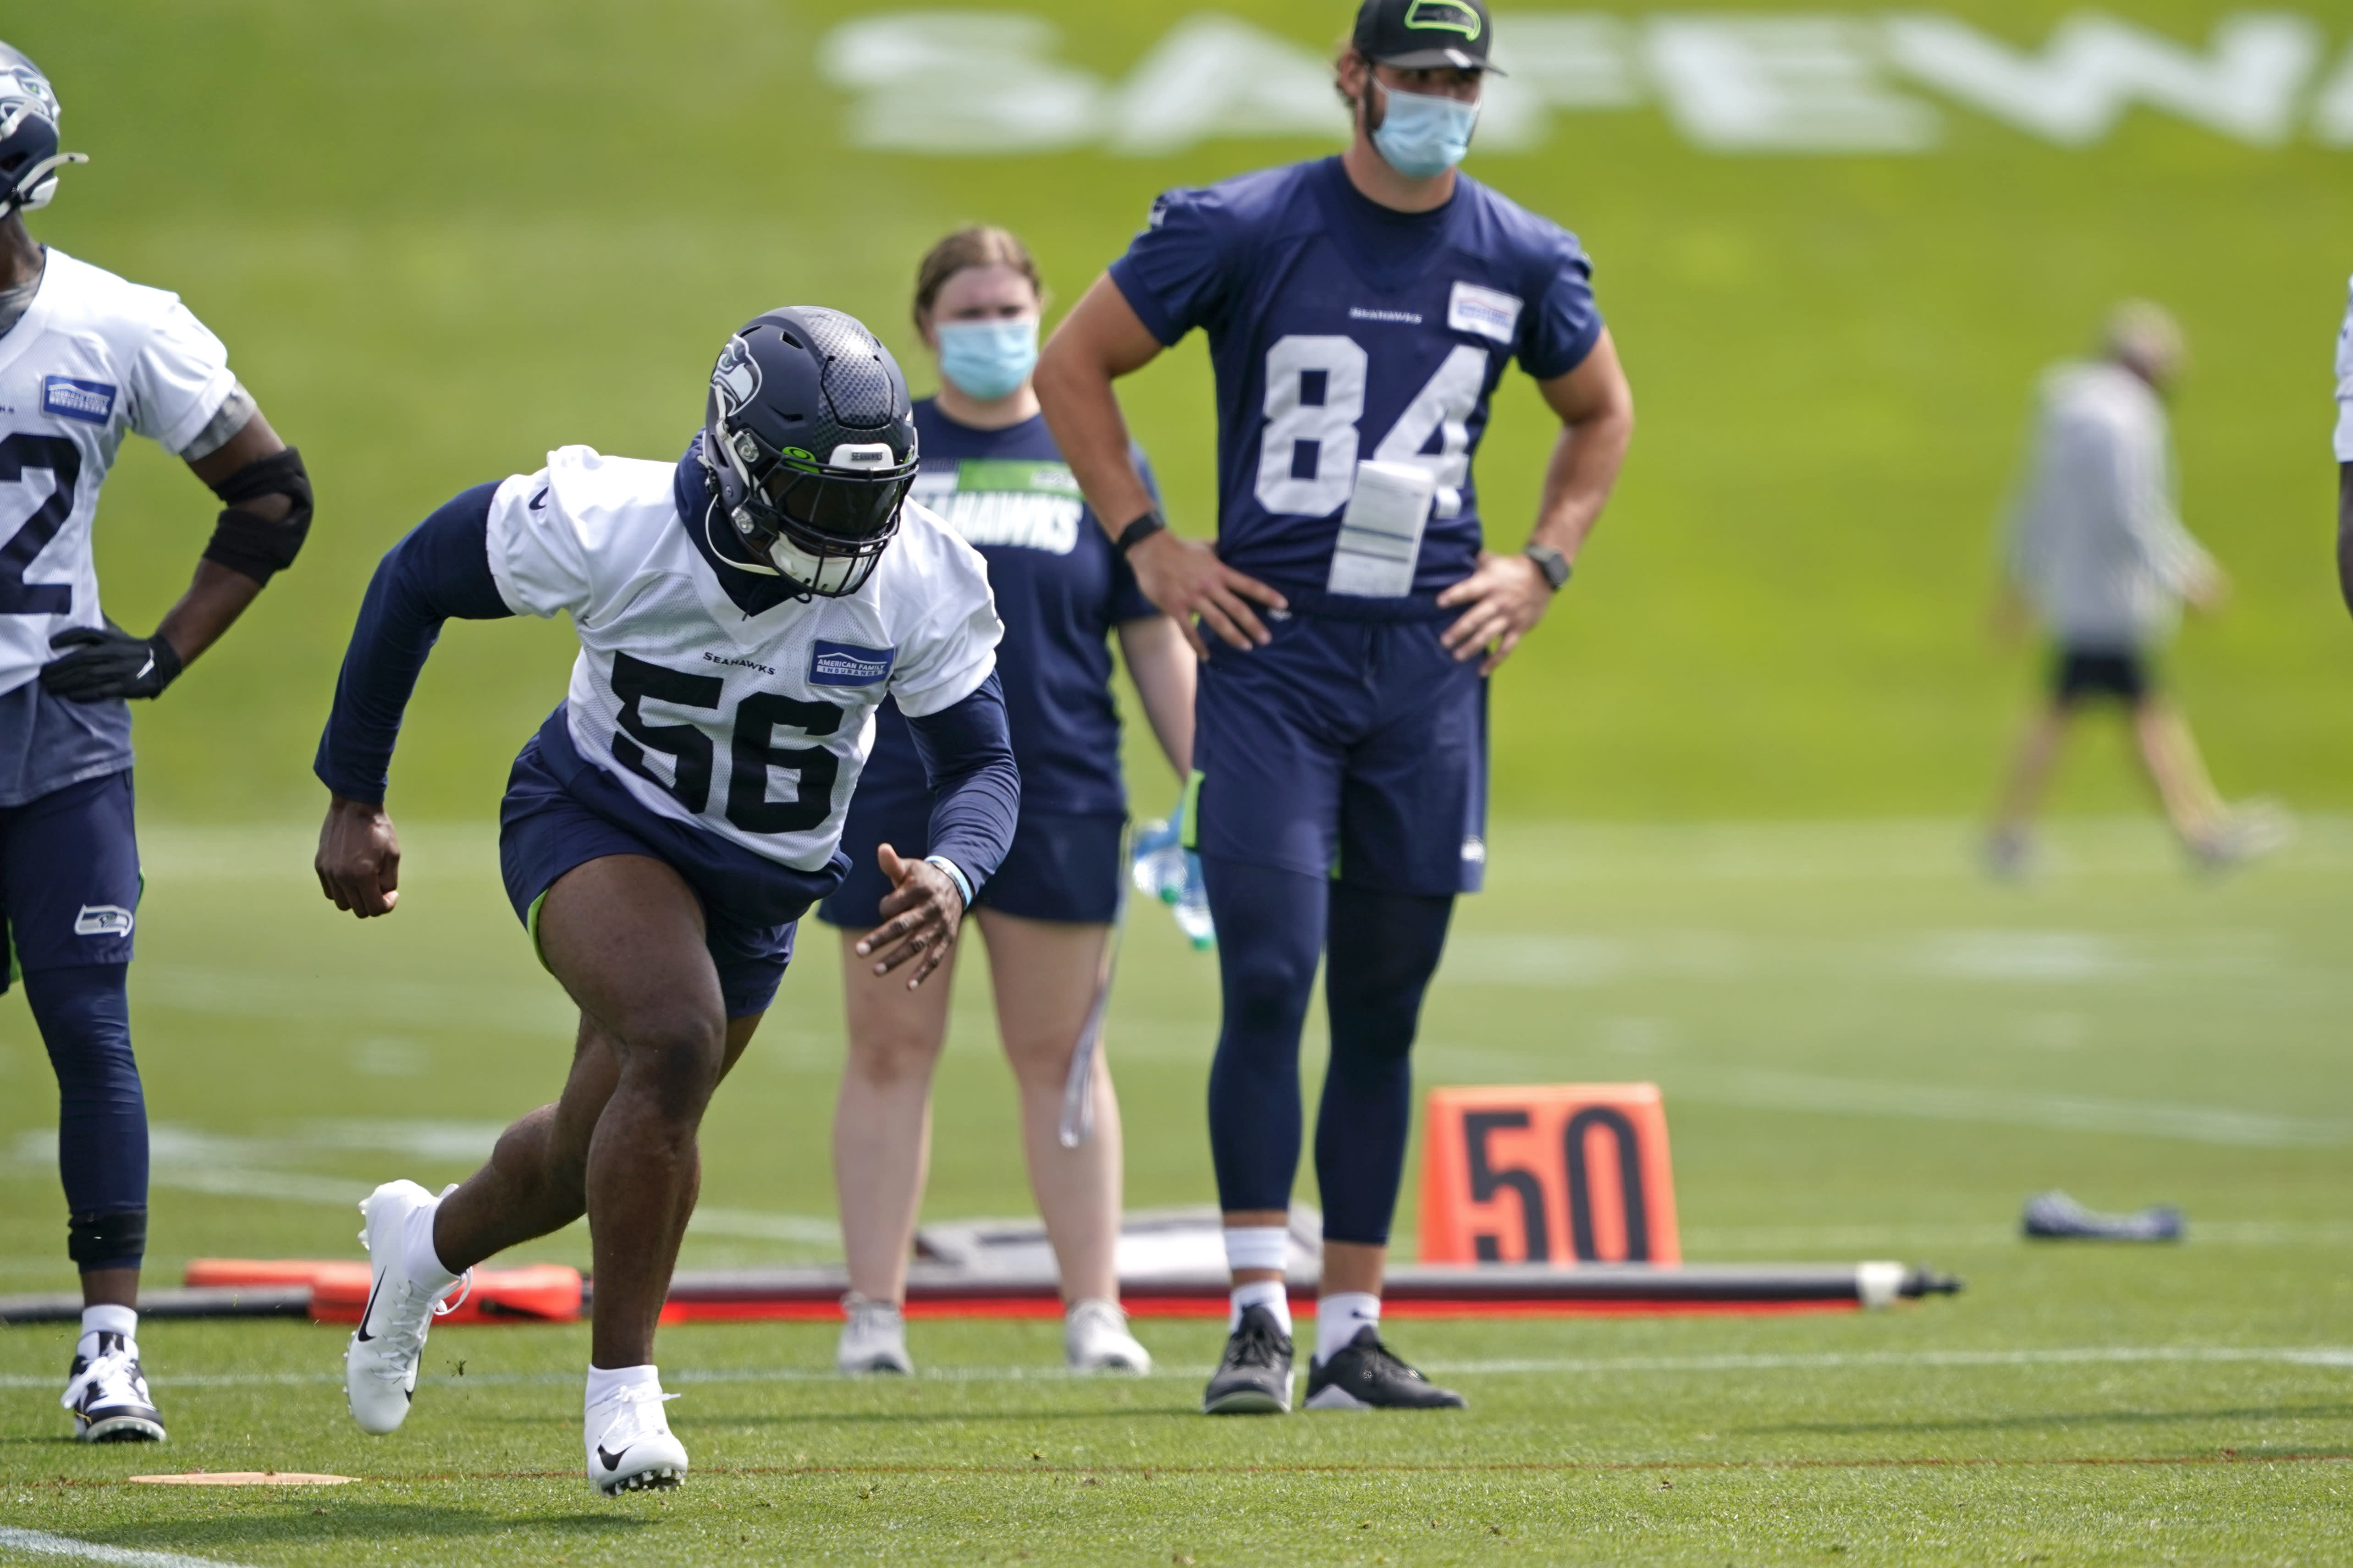 Seattle Seahawks linebacker Jordyn Brooks (56) runs a practice drill during NFL football training camp, Wednesday, Aug. 12, 2020, in Renton, Wash. (AP Photo/Ted S. Warren, Pool)